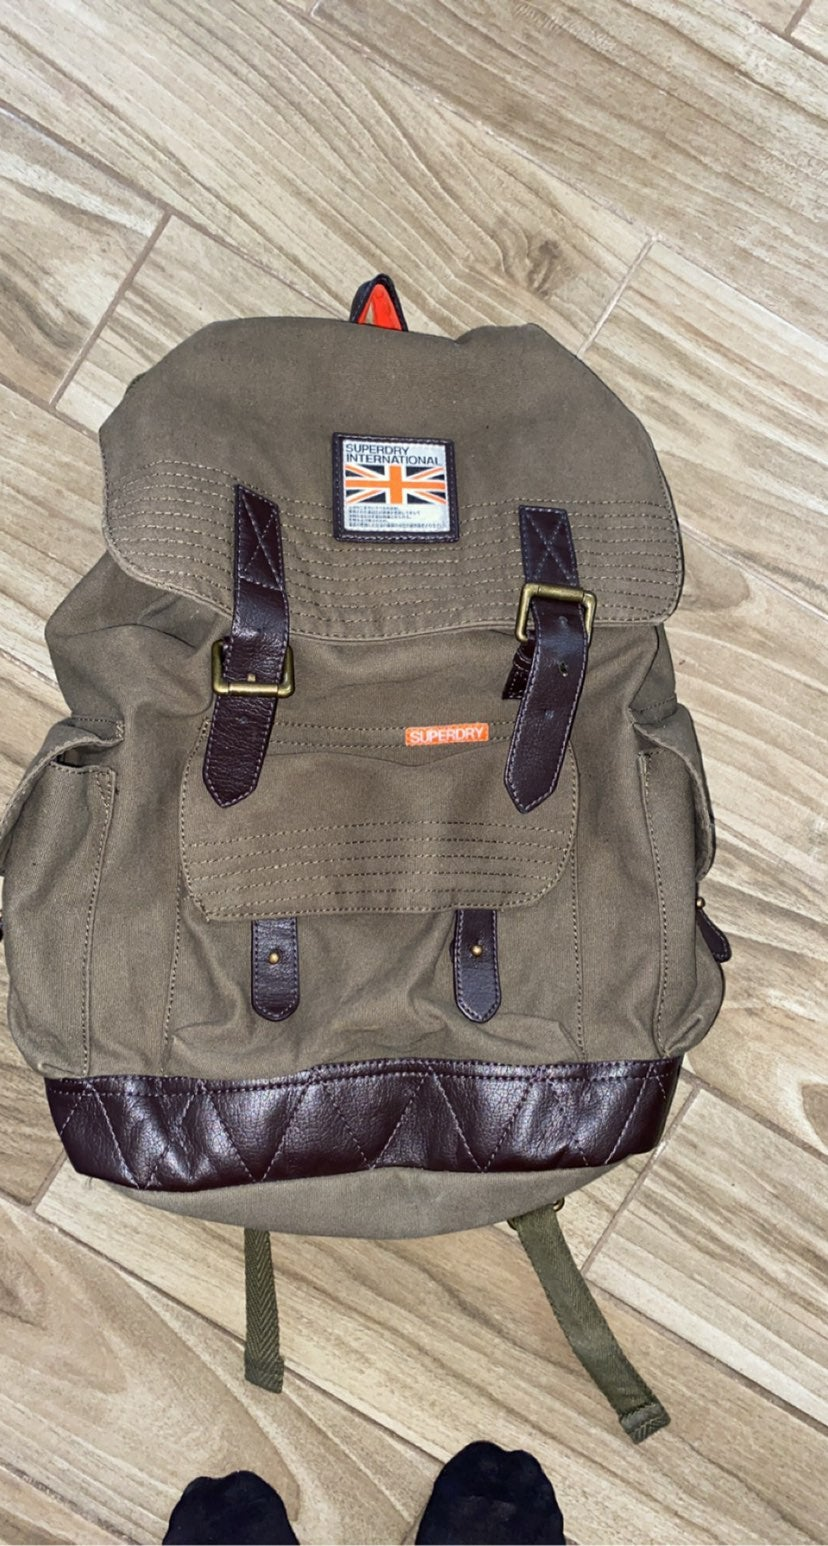 Superdry military style backpack